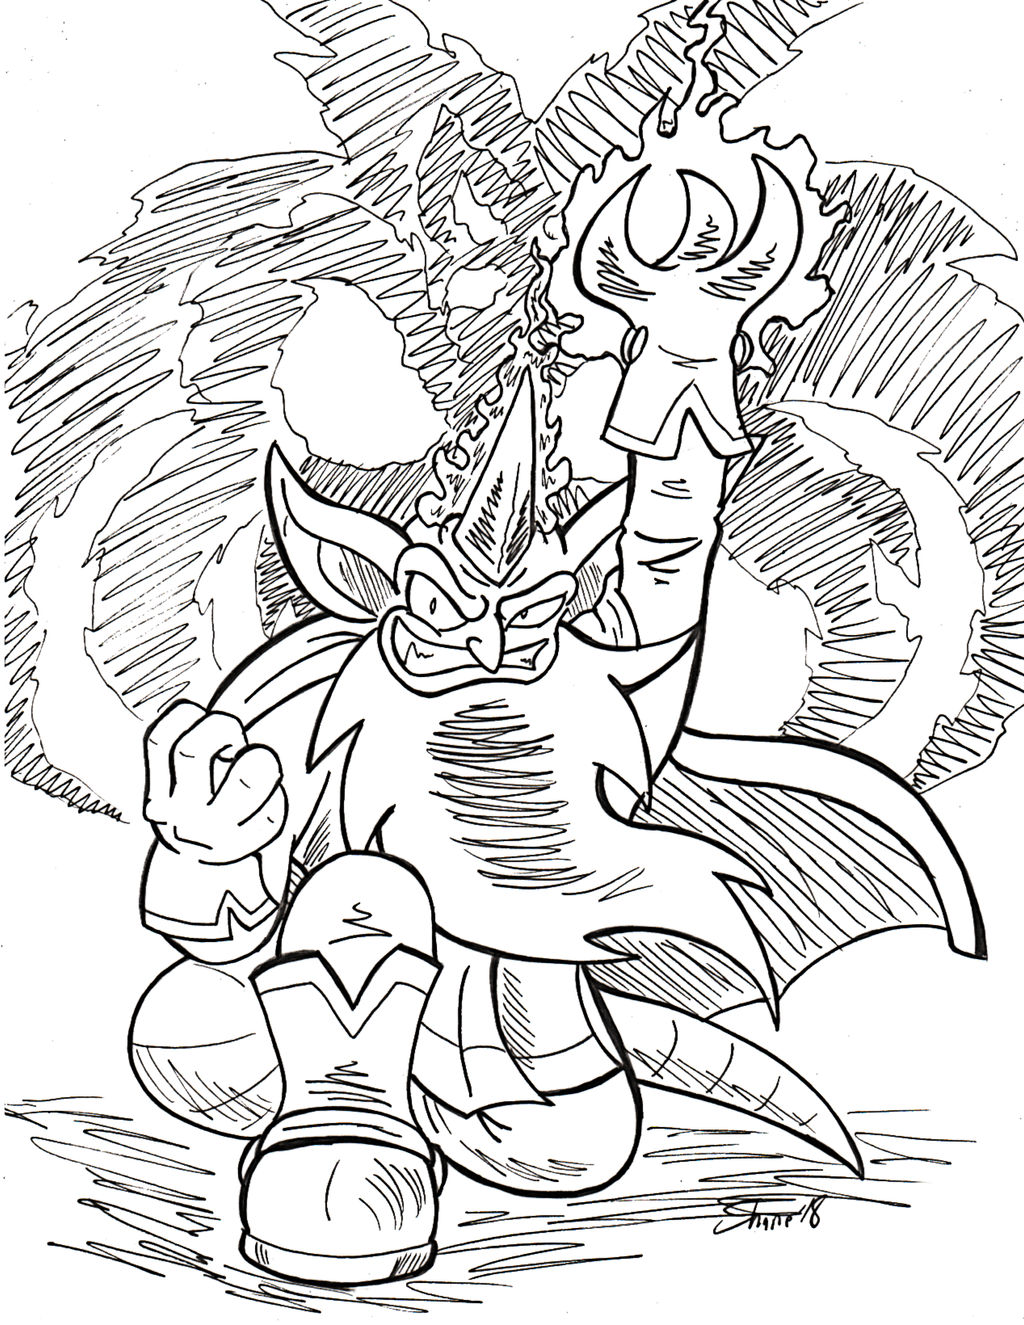 Sonictober - 08 - Mystic by Sea-Salt